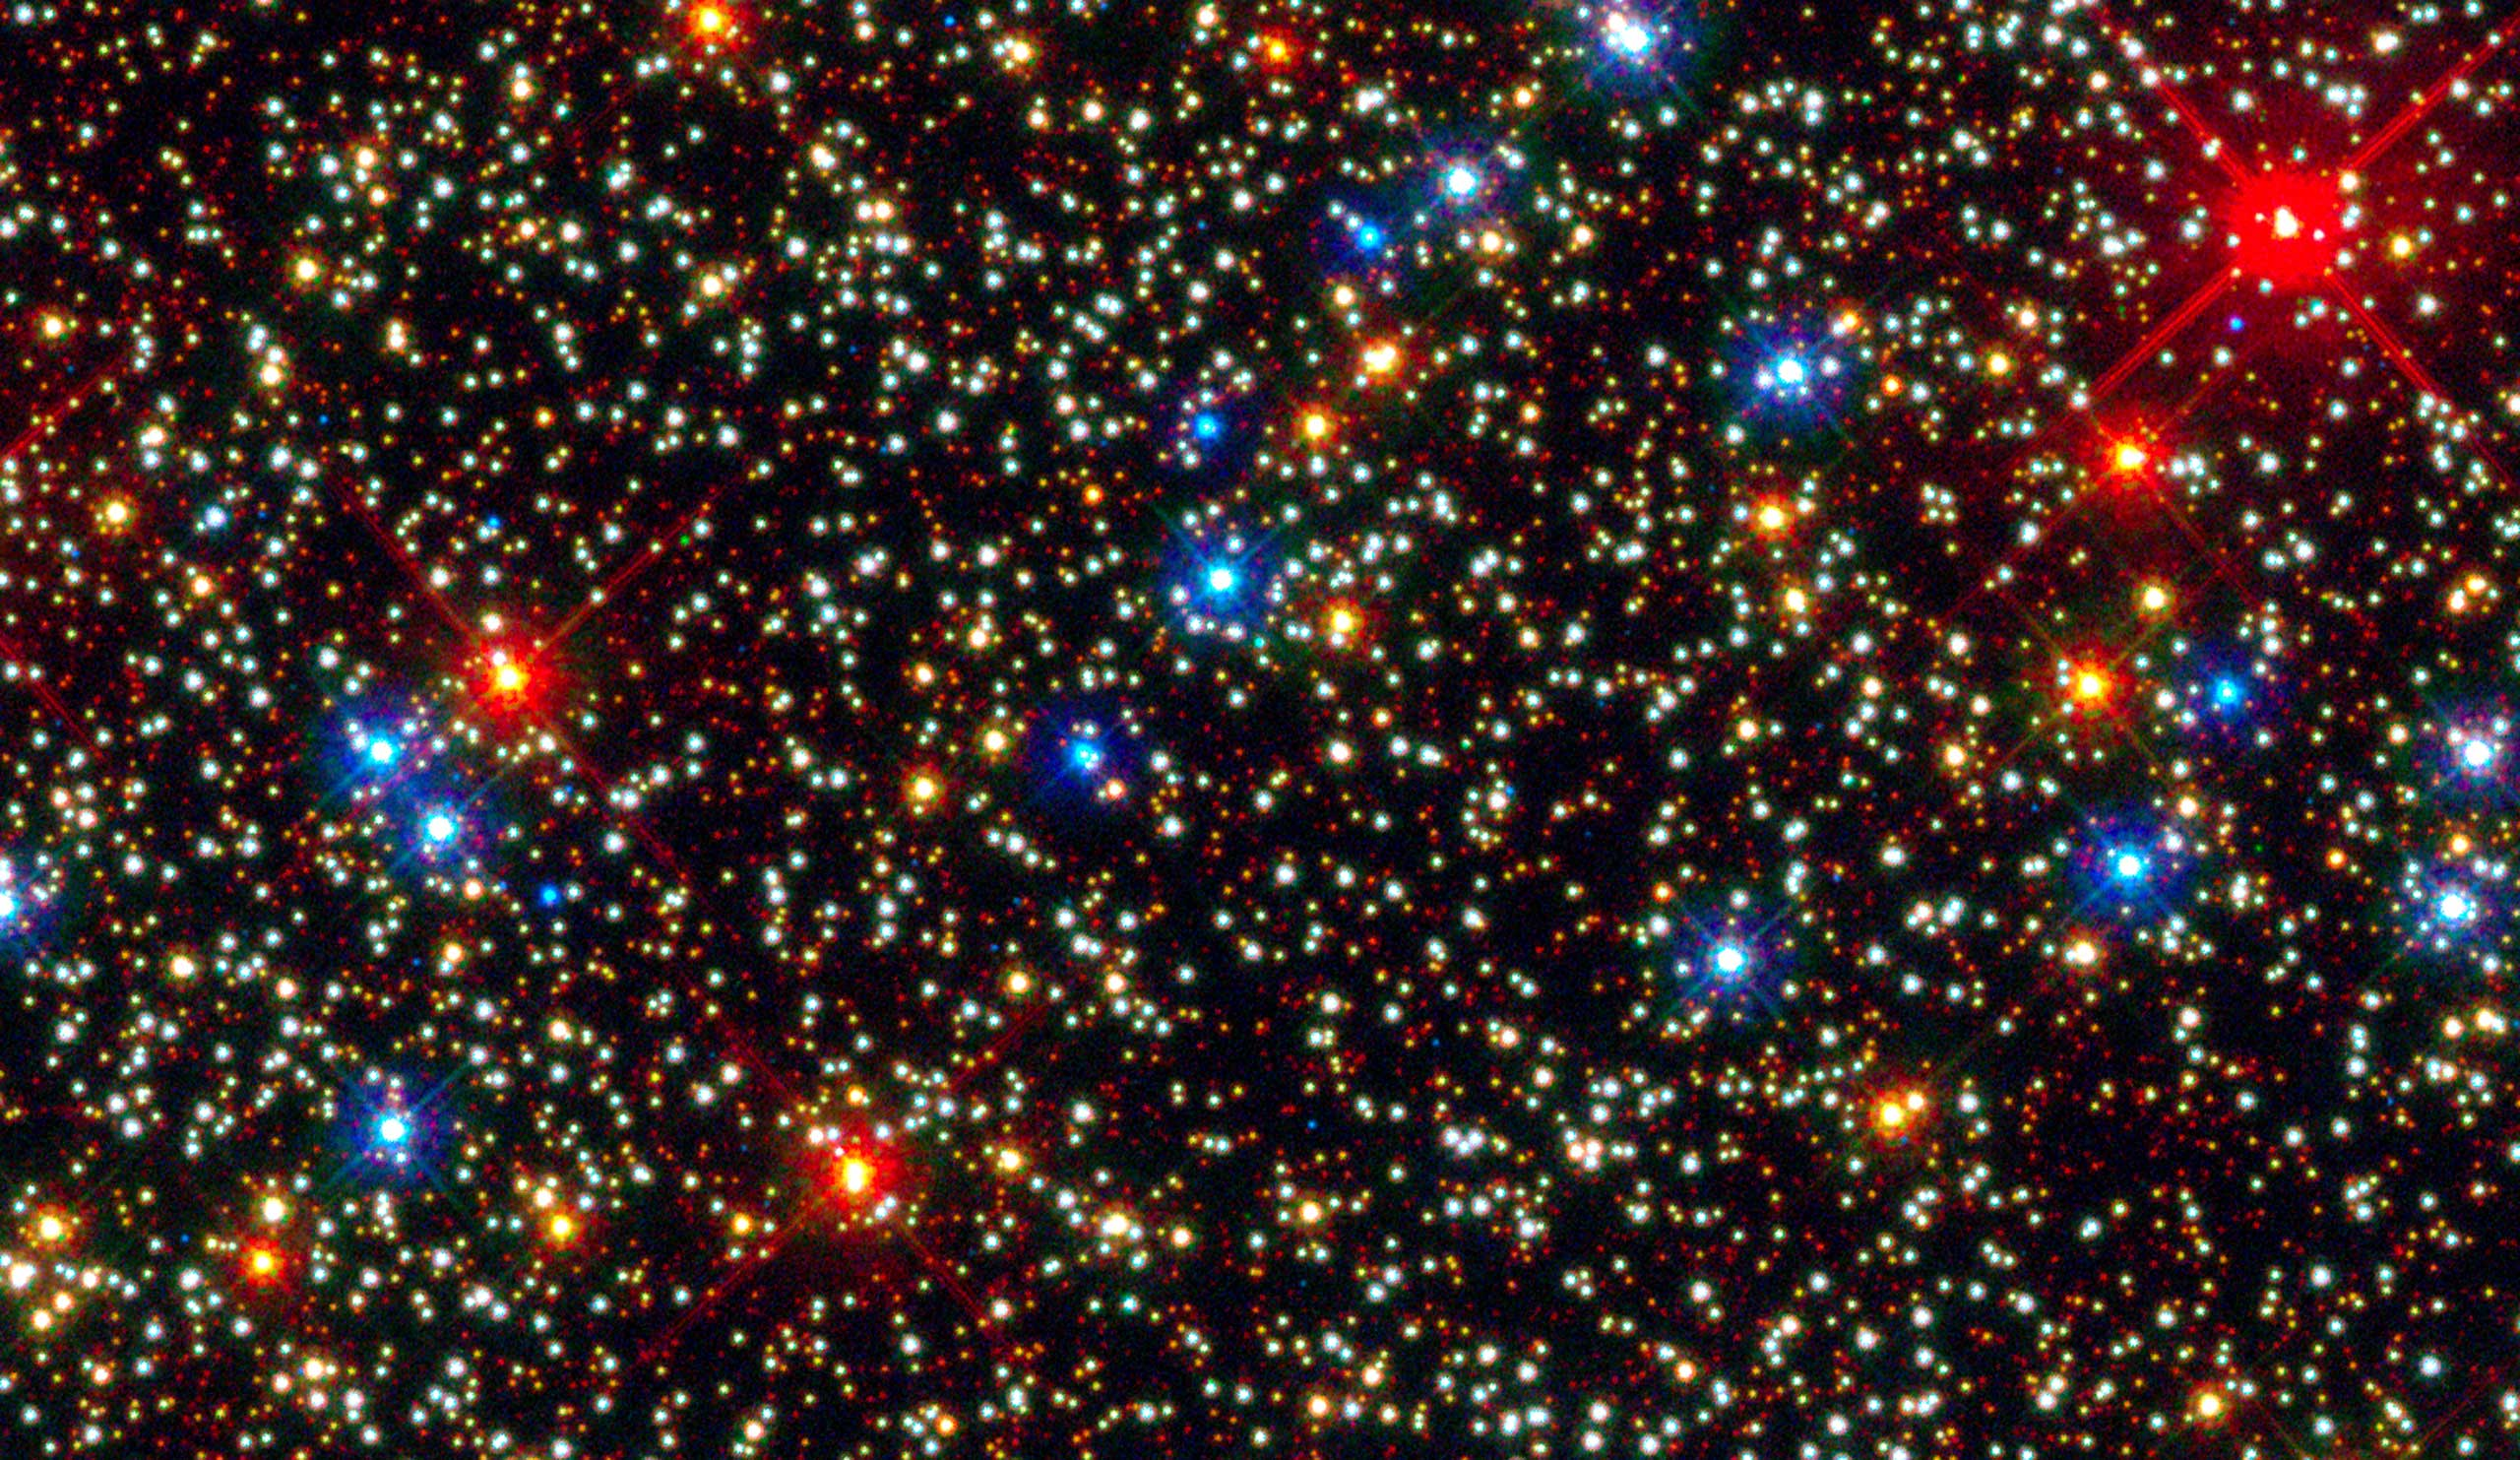 Colorful Stars Inside Globular Star Cluster Omega Centauri:                                                              NASA's Hubble Space Telescope snapped this panoramic view of a colorful assortment of 100,000 stars in the core of a giant star cluster.                               The image reveals a small region inside the massive globular cluster Omega Centauri, which holds nearly 10 million stars. The stars in Omega Centauri are between 10 billion and 12 billion years old. The cluster lies about 16,000 light-years from Earth.                                                              The majority of the stars in the image are yellow-white, like our Sun. These are adult stars that are shining by hydrogen fusion. Toward the end of their normal lives, the stars become cooler and larger. These late-life stars are the orange dots in the image.                                                               Even later in their life cycles, the stars continue to cool down and expand in size, becoming red giants. These bright red stars swell to many times larger than our Sun's size and begin to shed their gaseous envelopes.                               After ejecting most of their mass and exhausting much of their hydrogen fuel, the stars appear brilliant blue. Only a thin layer of material covers their super-hot cores. These stars are desperately trying to extend their lives by fusing helium in their cores. At this stage, they emit much of their light at ultraviolet wavelengths.                               When the helium runs out, the stars reach the end of their lives. Only their burned-out cores remain, and they are called white dwarfs (the faint blue dots in the image).                                                               Image released on Oct. 26, 2010.